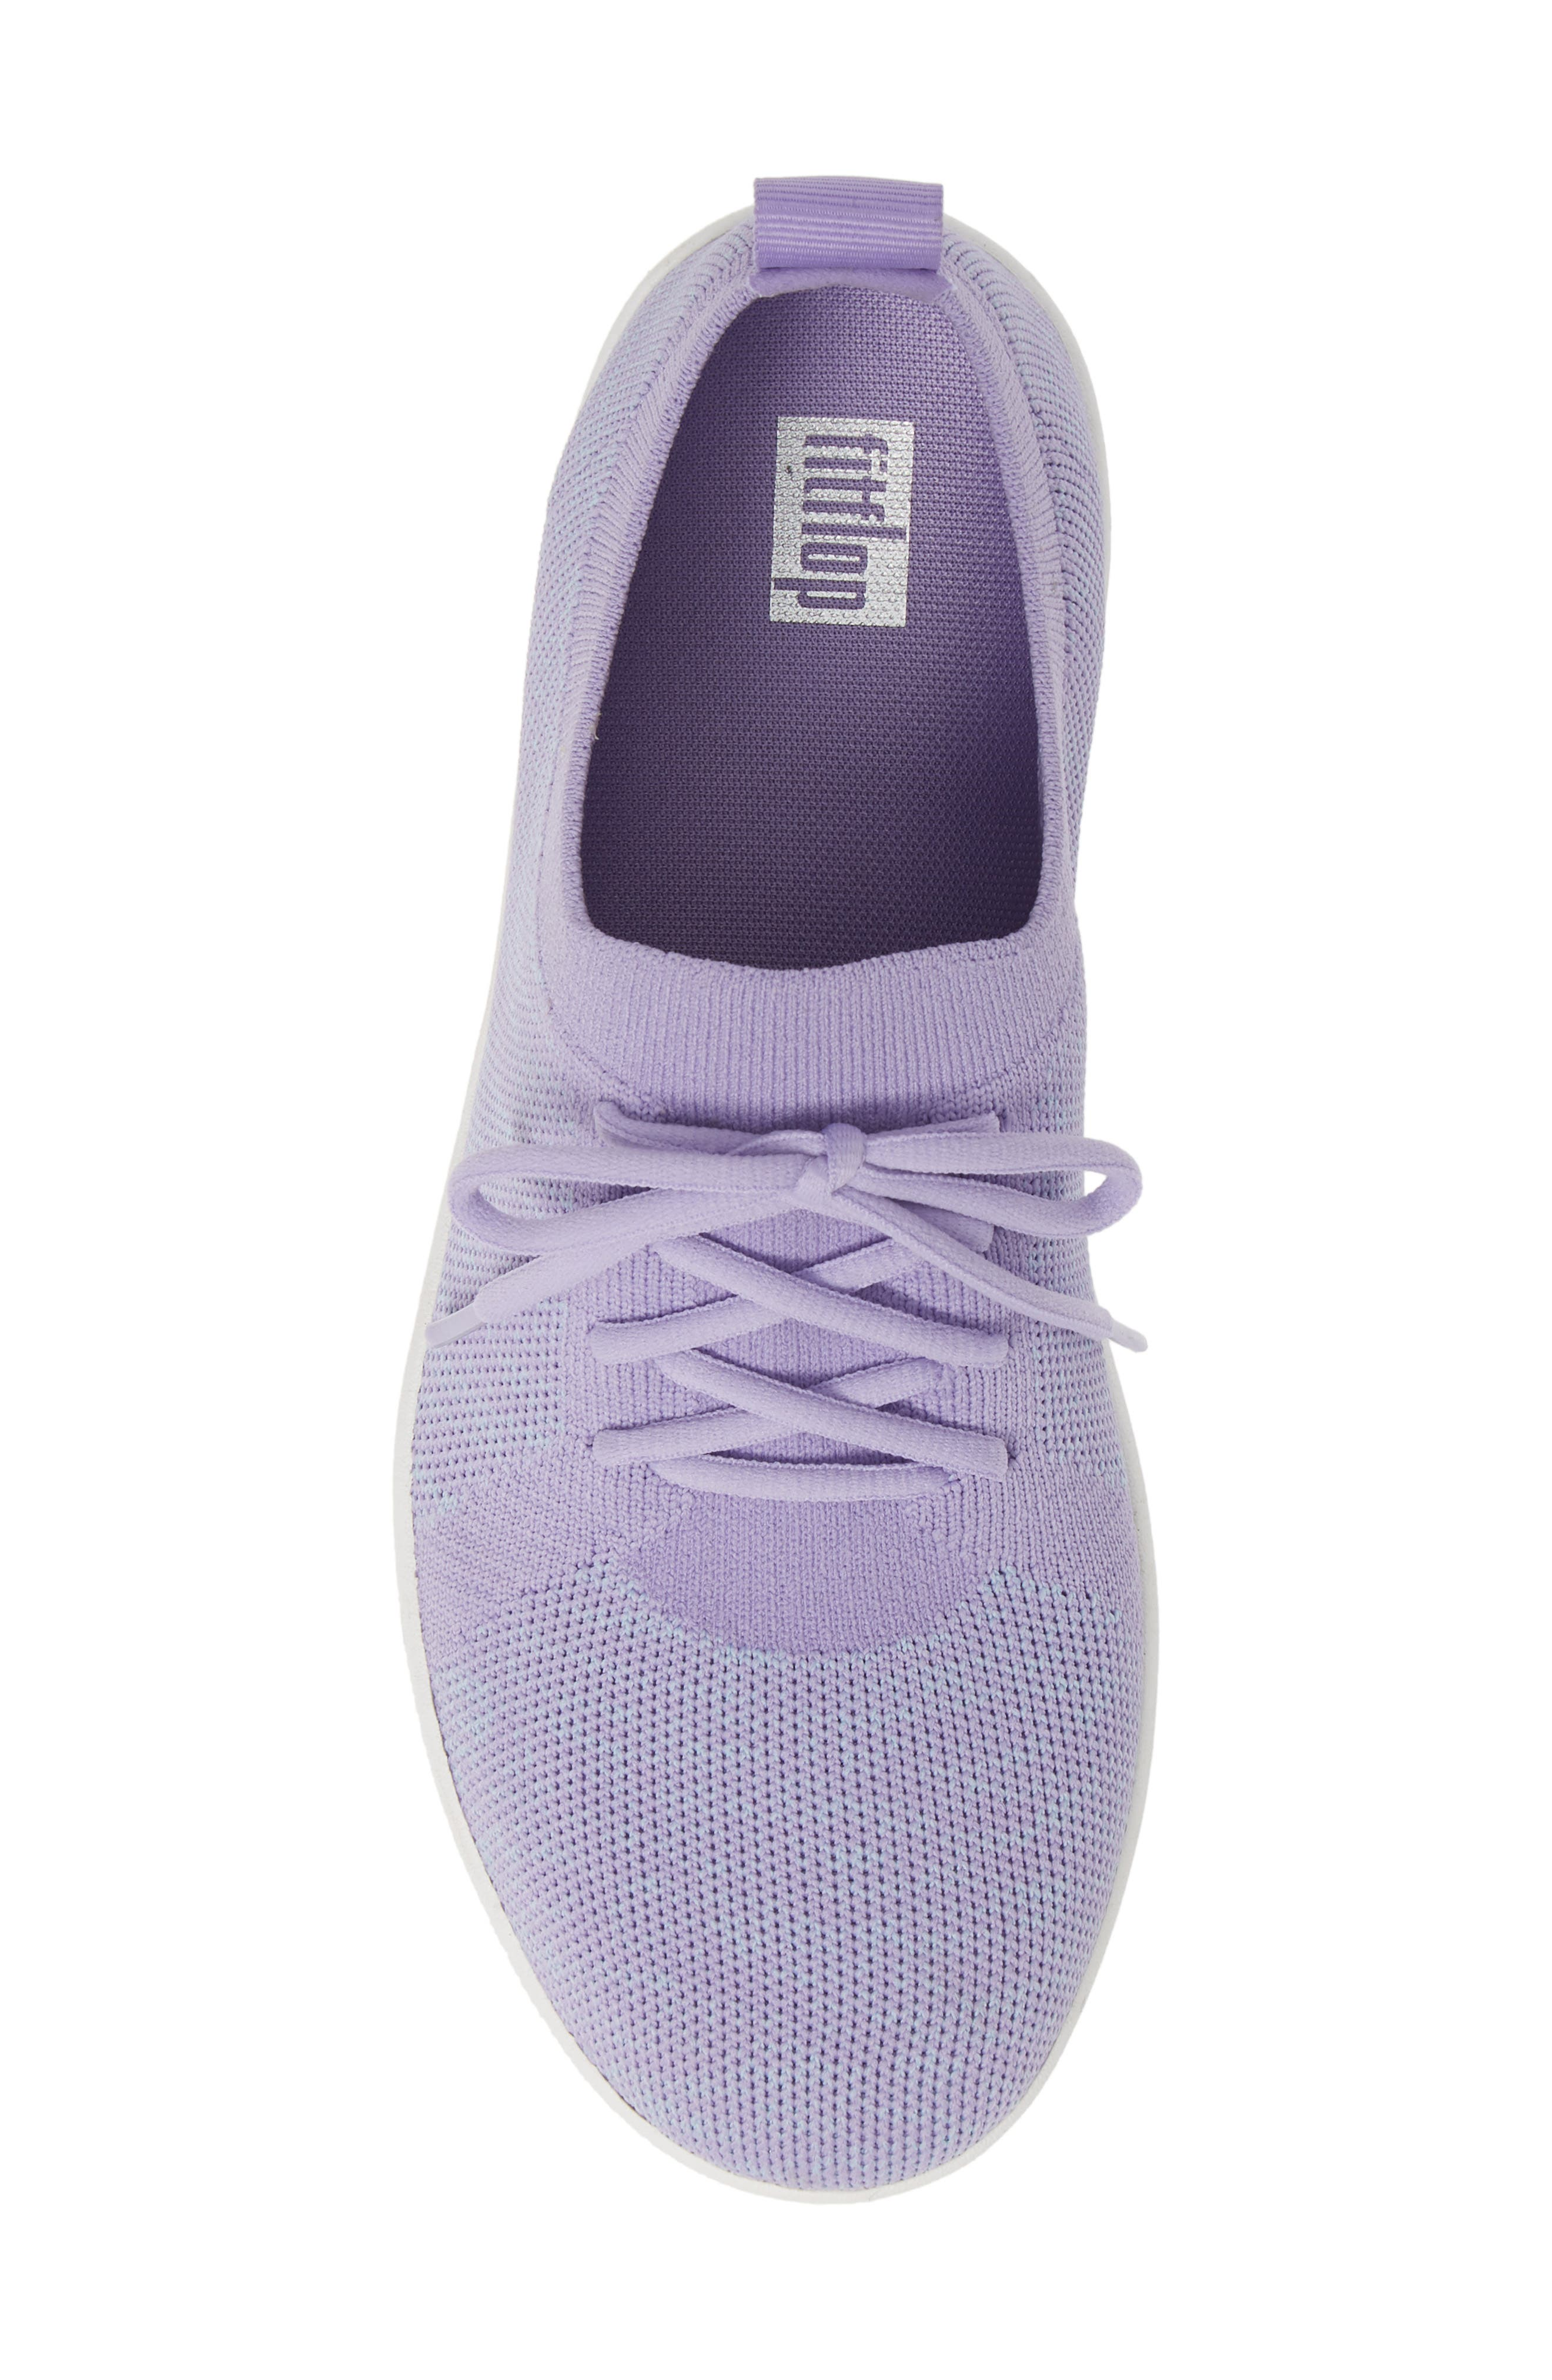 FITFLOP, F-Sporty Uberknit<sup>™</sup> Sneaker, Alternate thumbnail 5, color, 535